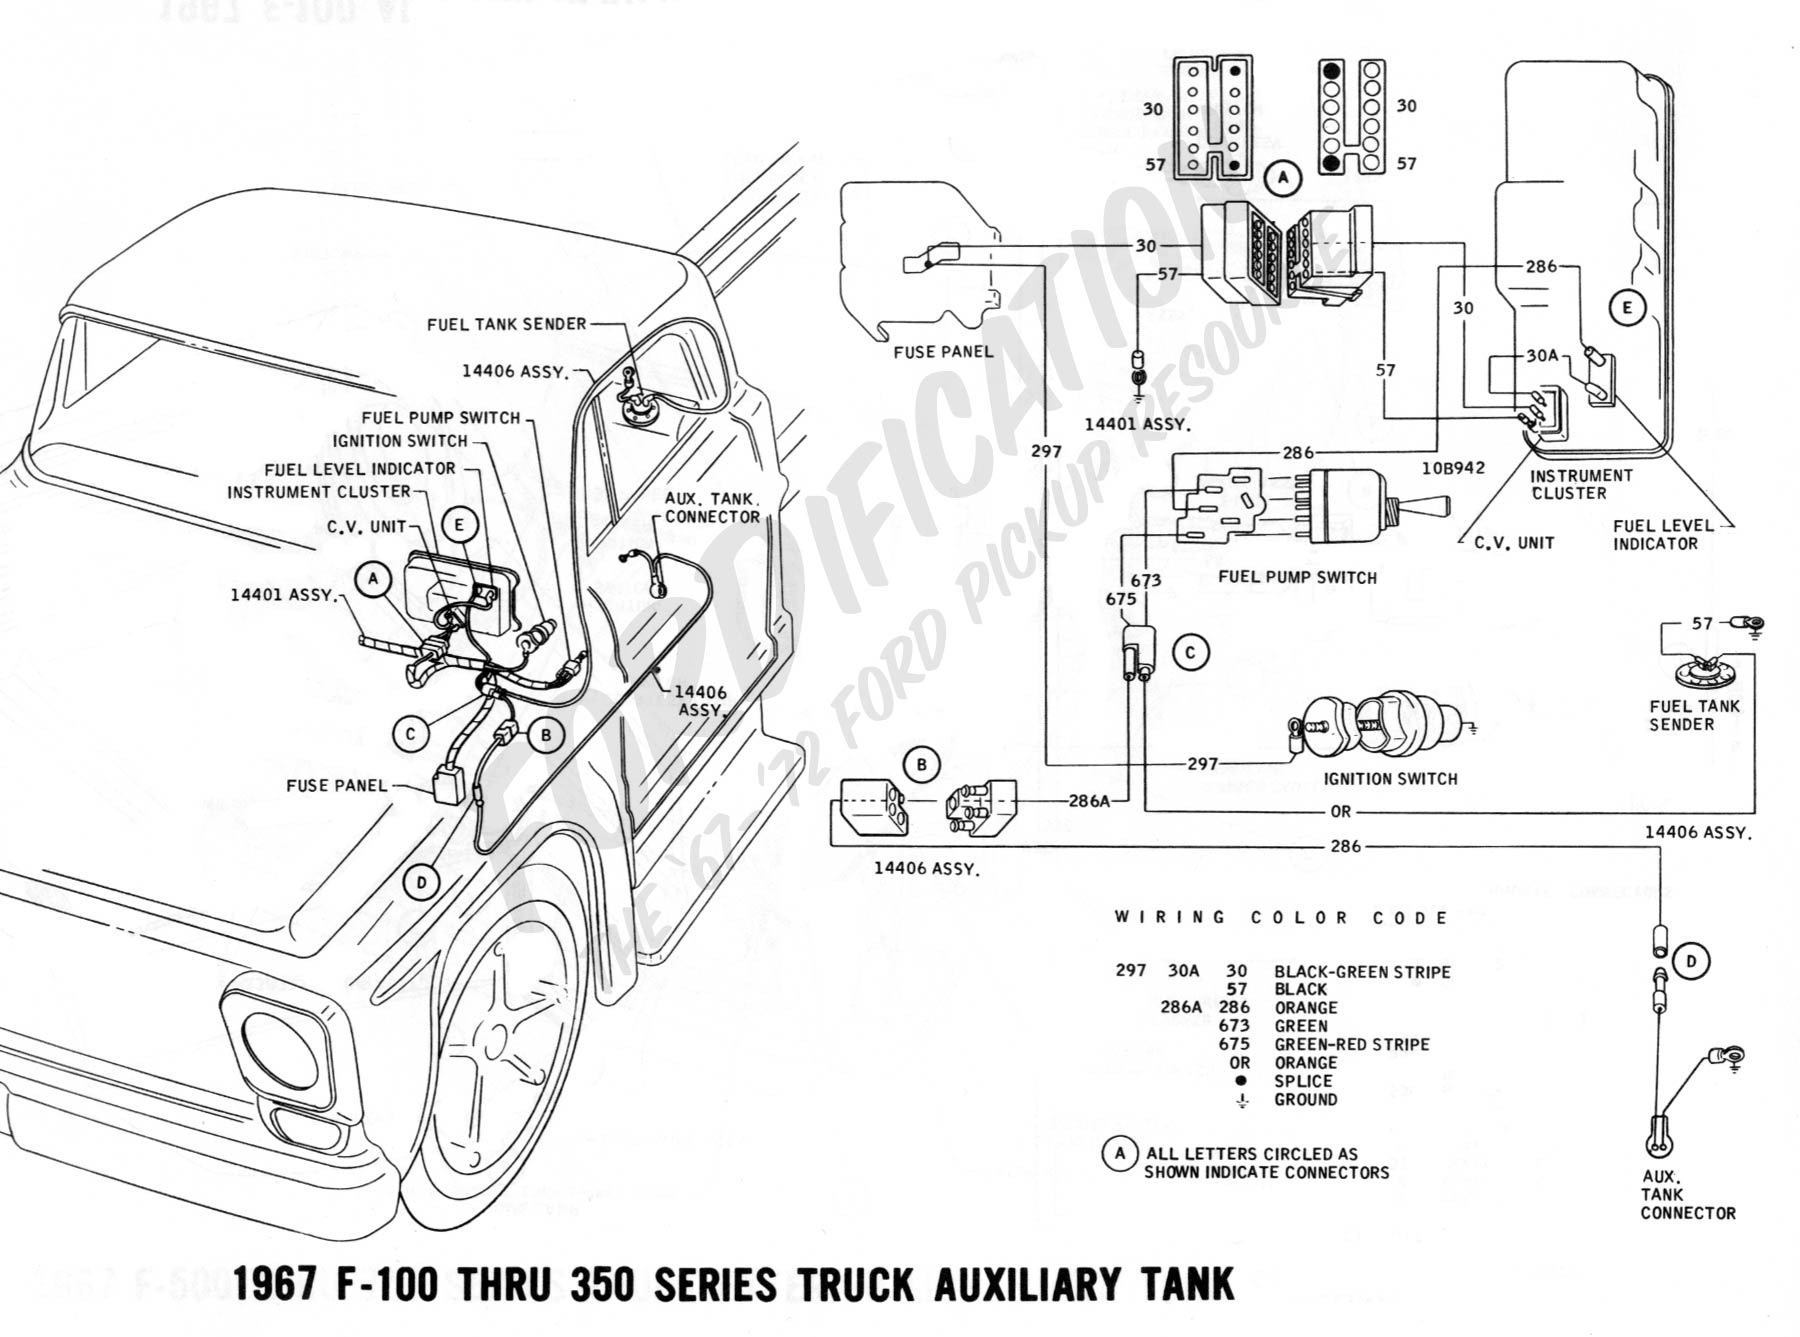 1960 Ford F100 Wiring Harness Free Download Loom Search For Diagrams U2022